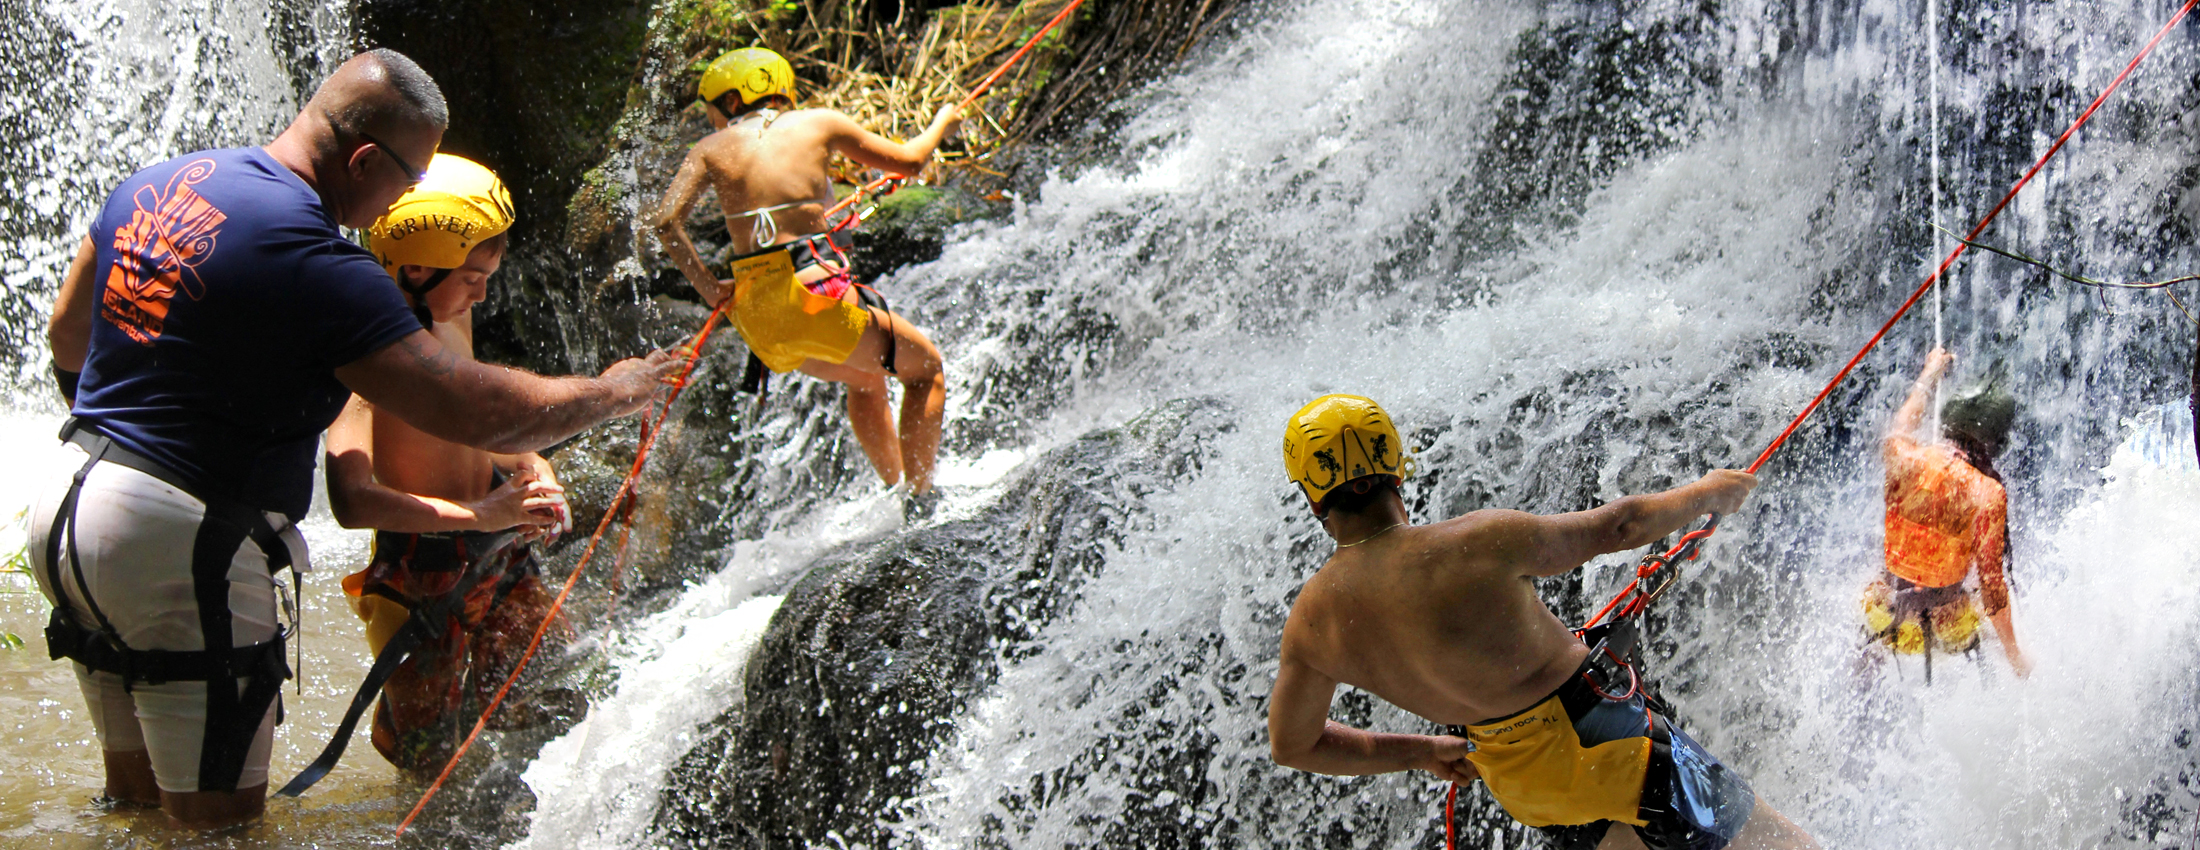 RAPPEL PRIVATE WATERFALLS